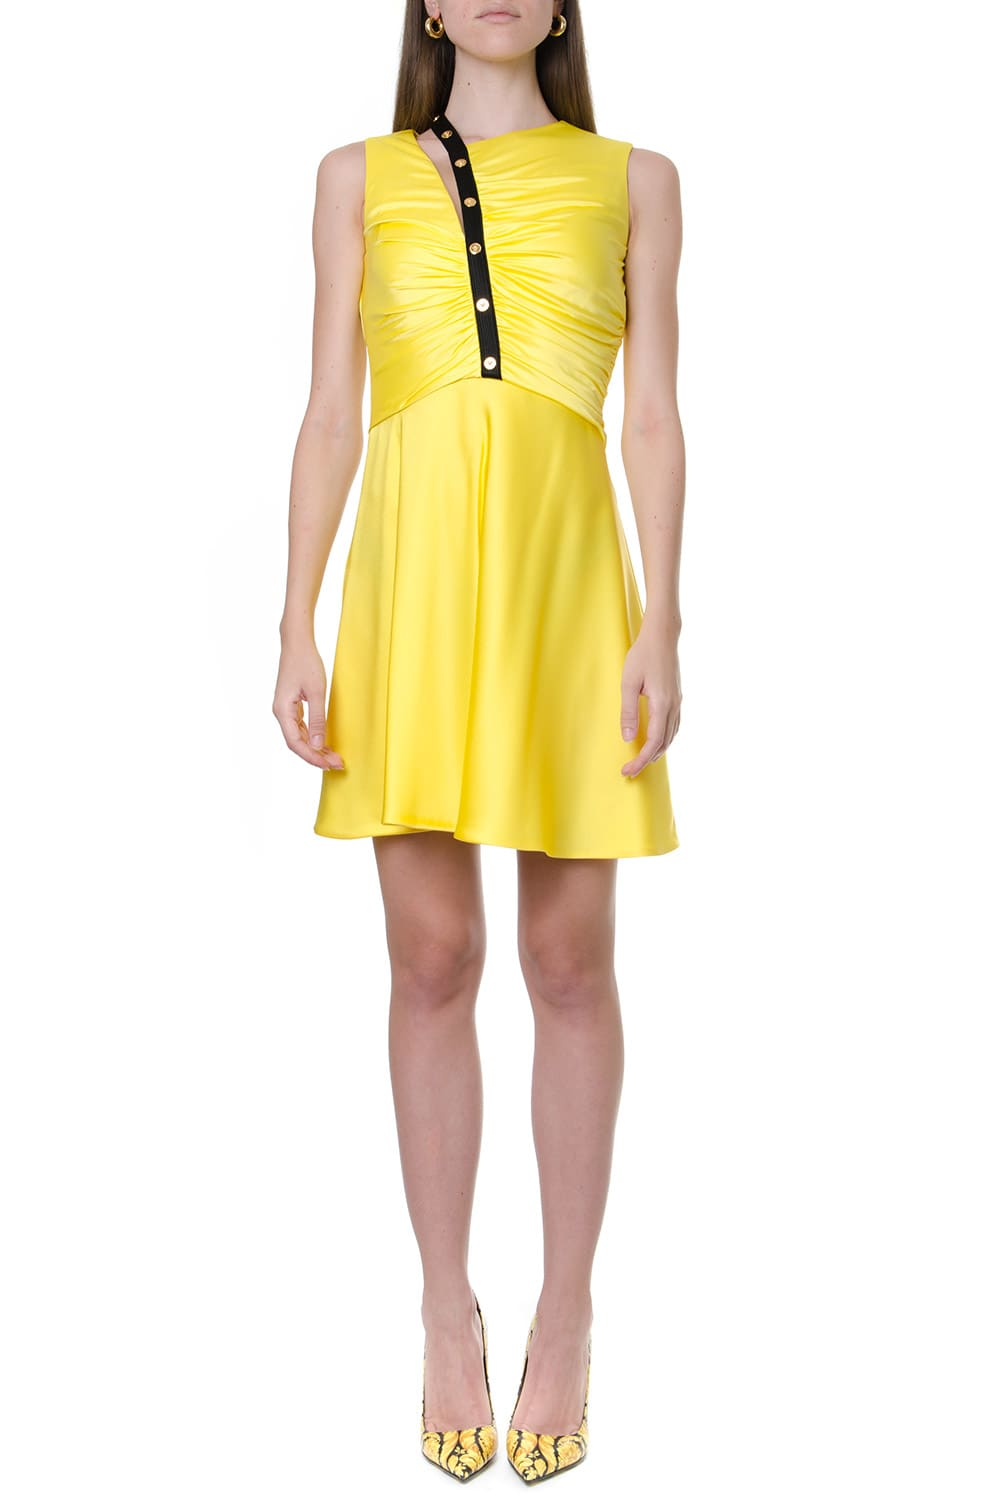 Versace Yellow Ruffled Dress